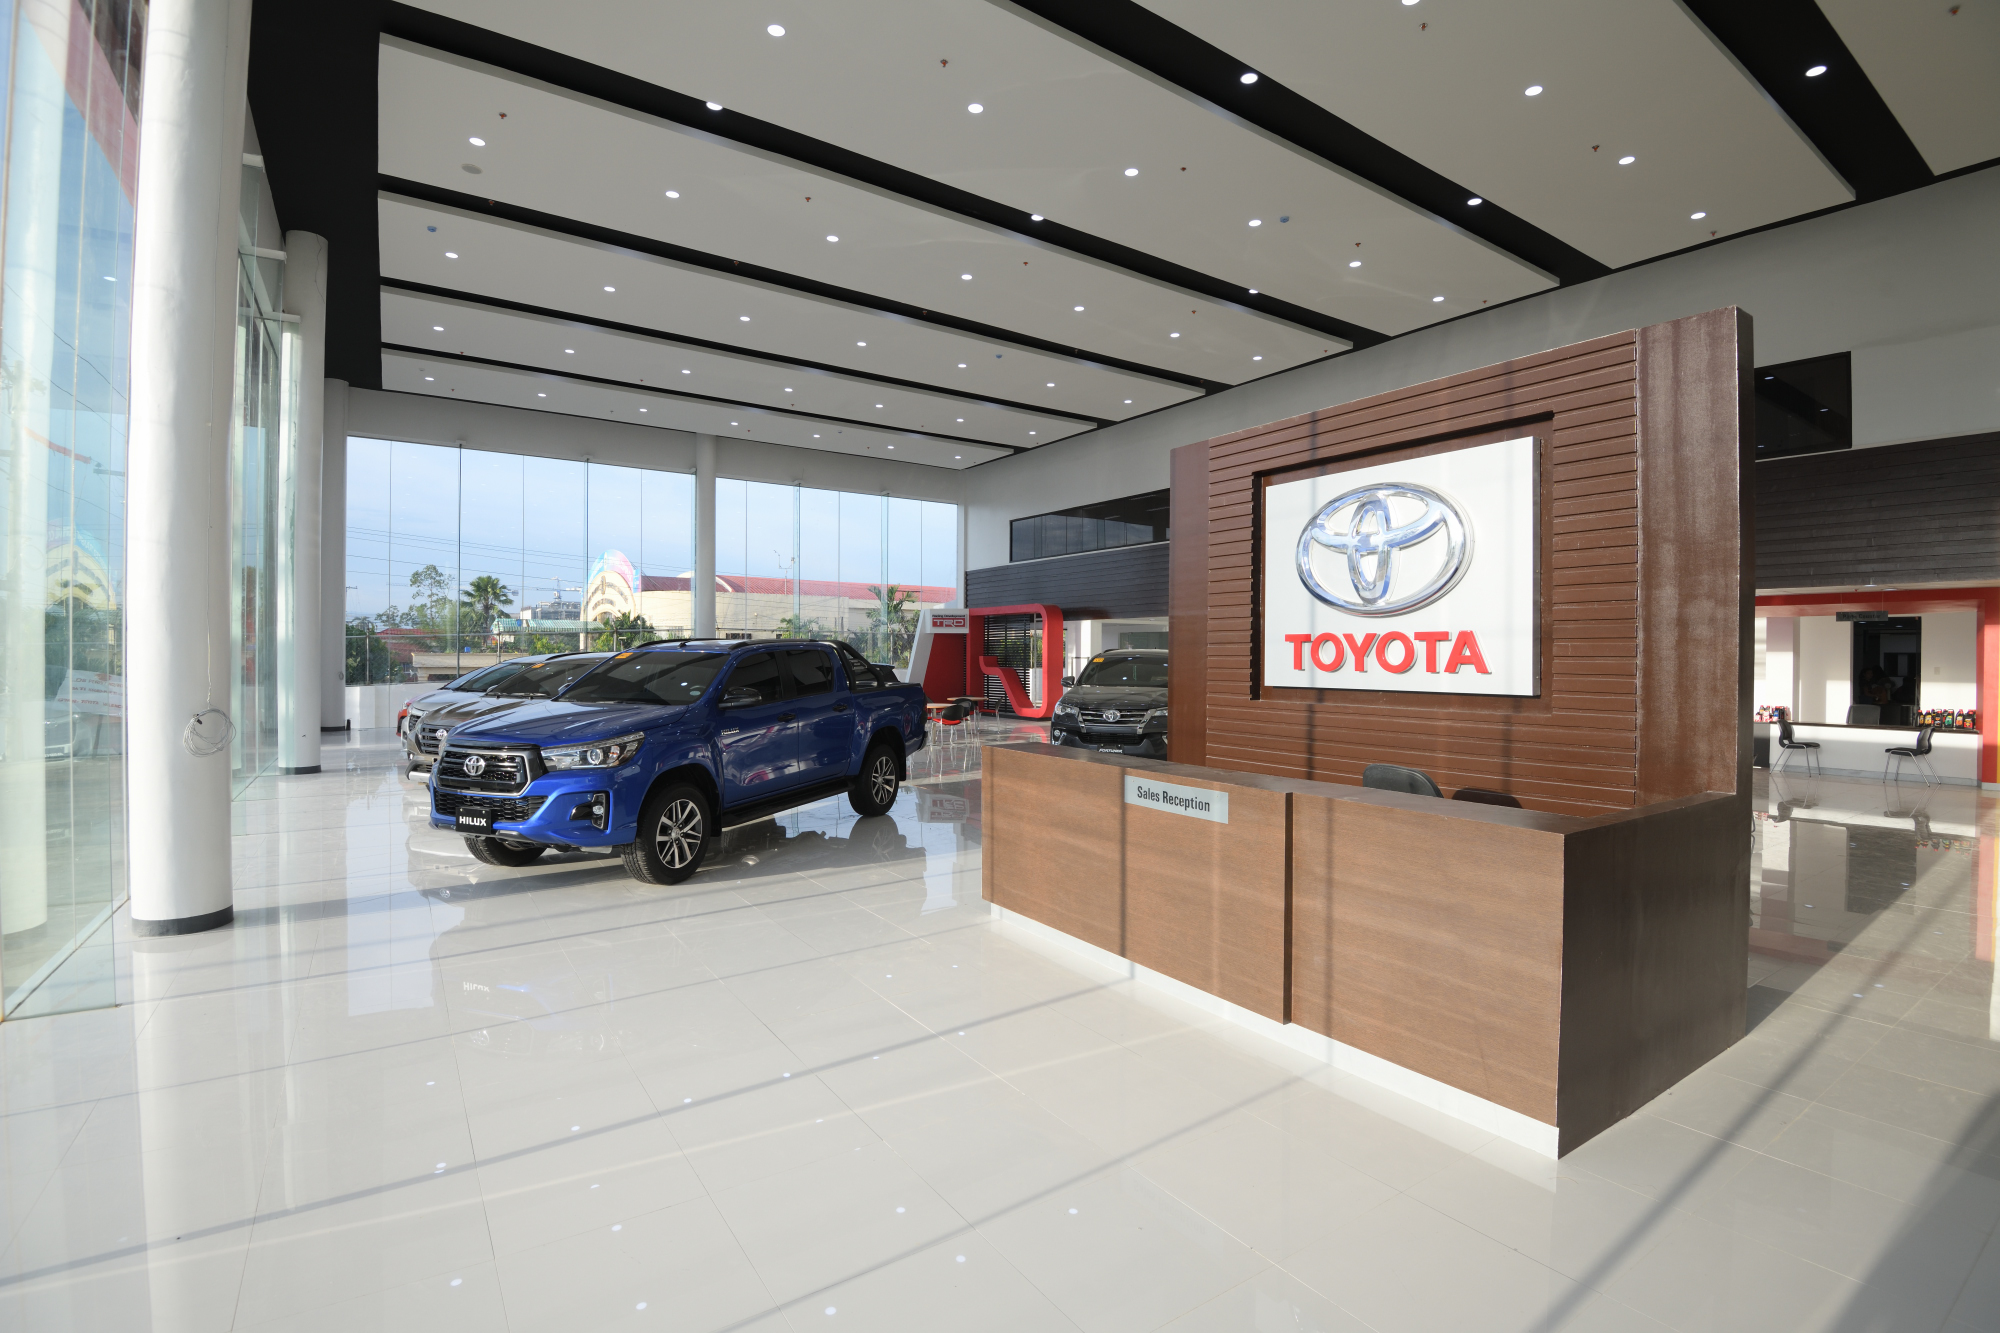 Toyota Customer Assistance Center Resumption of Operations